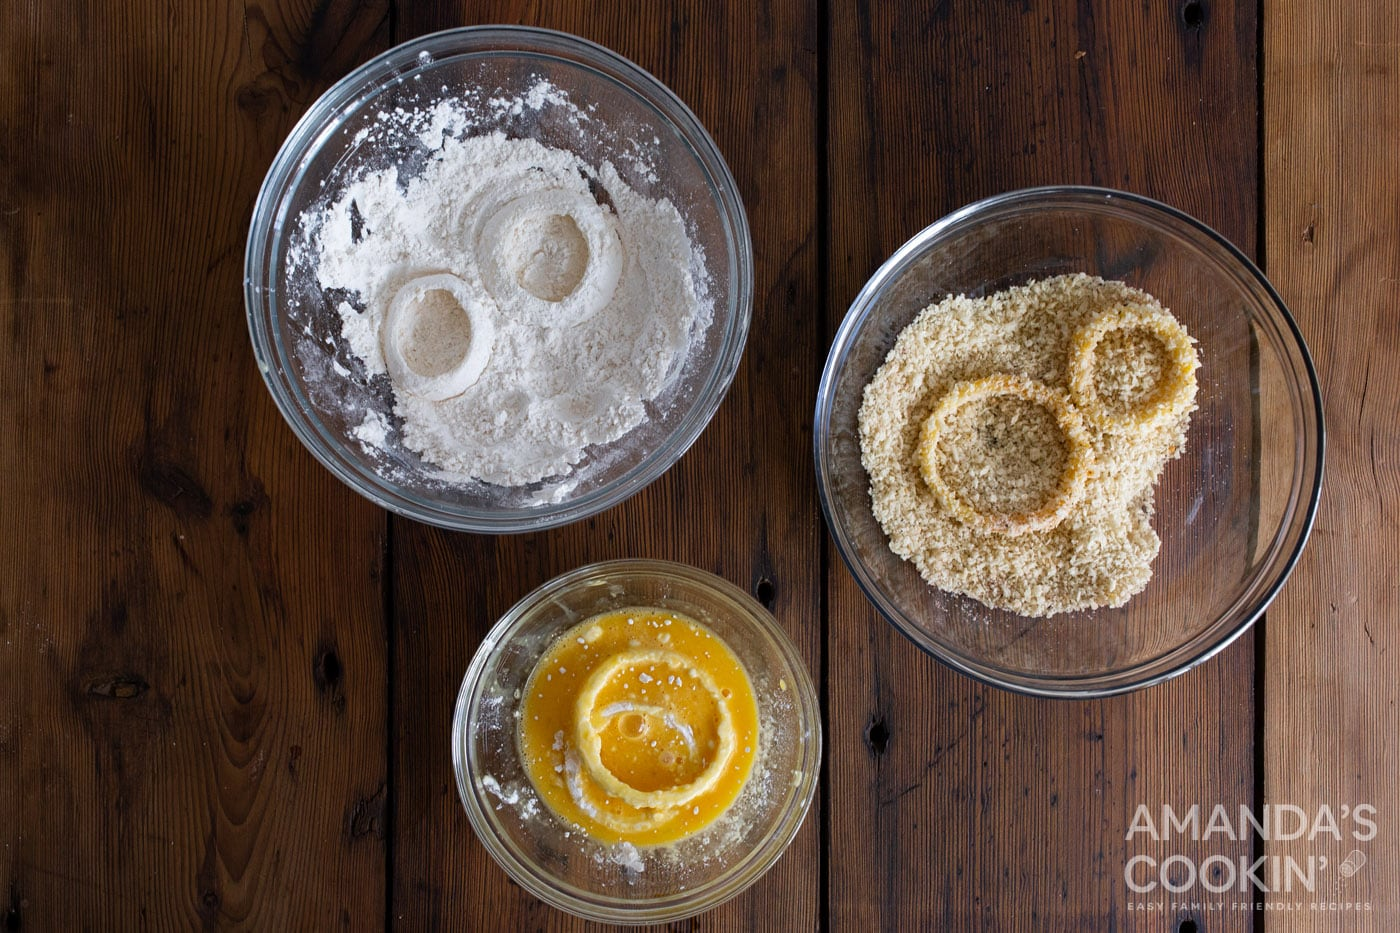 dipping onion in bowl of flour, breadcrumbs, and whisked eggs